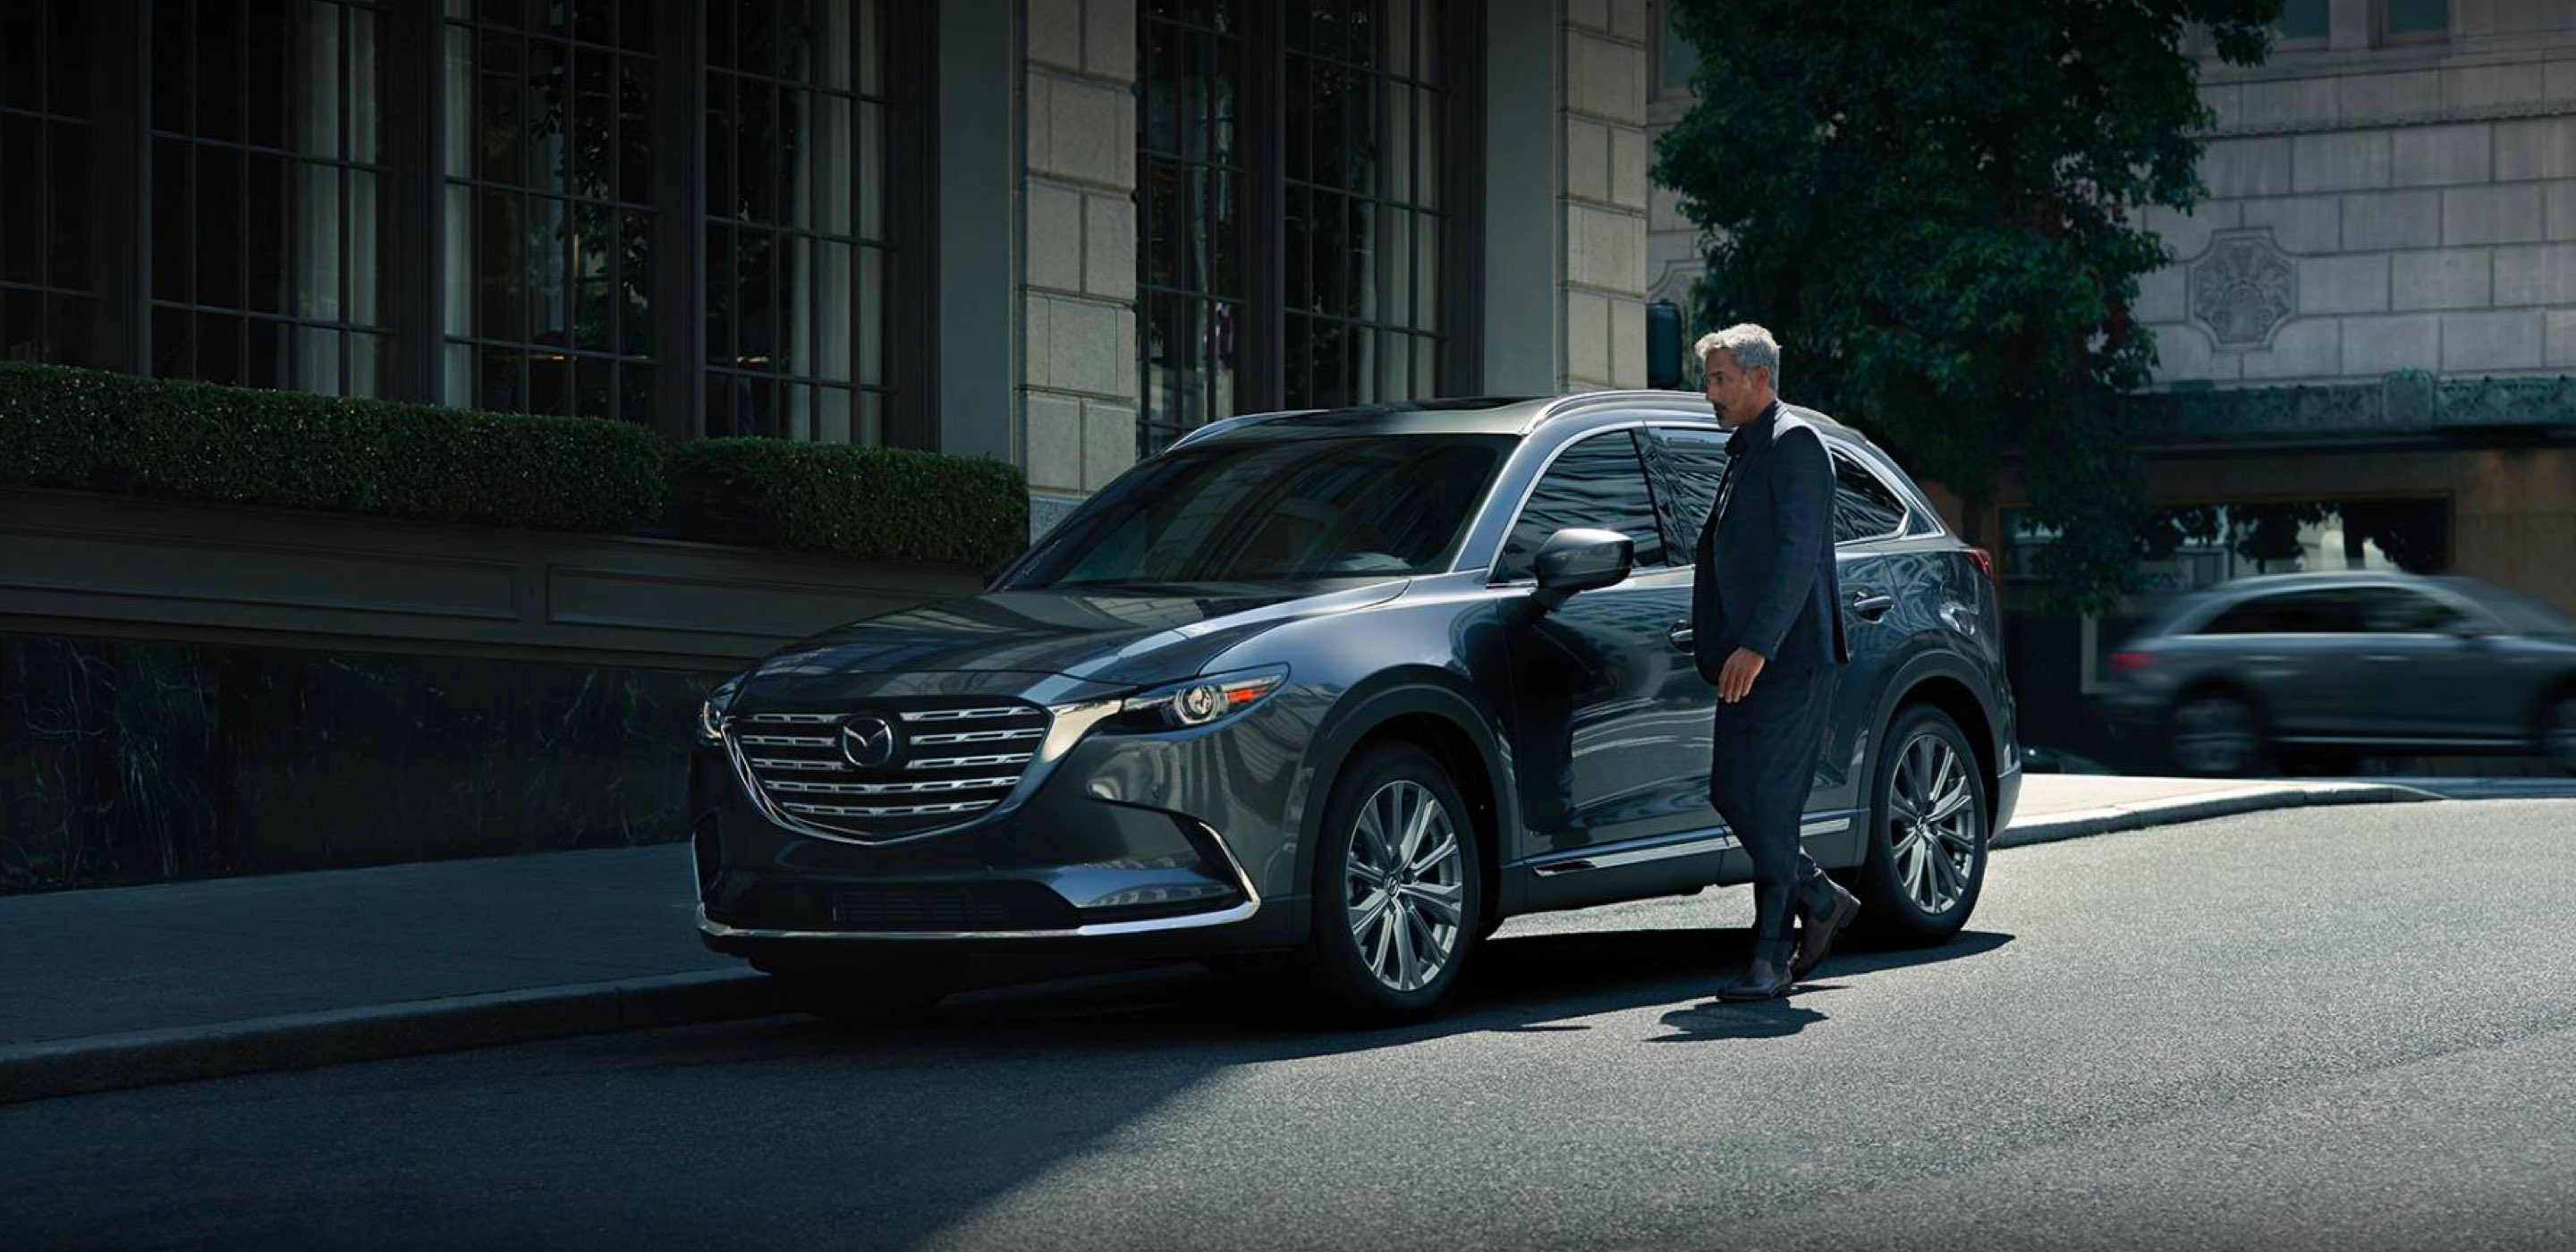 2021 Mazda CX-9, SOPHISTICATION AND PERFORMANCE IN PERFECT HARMON